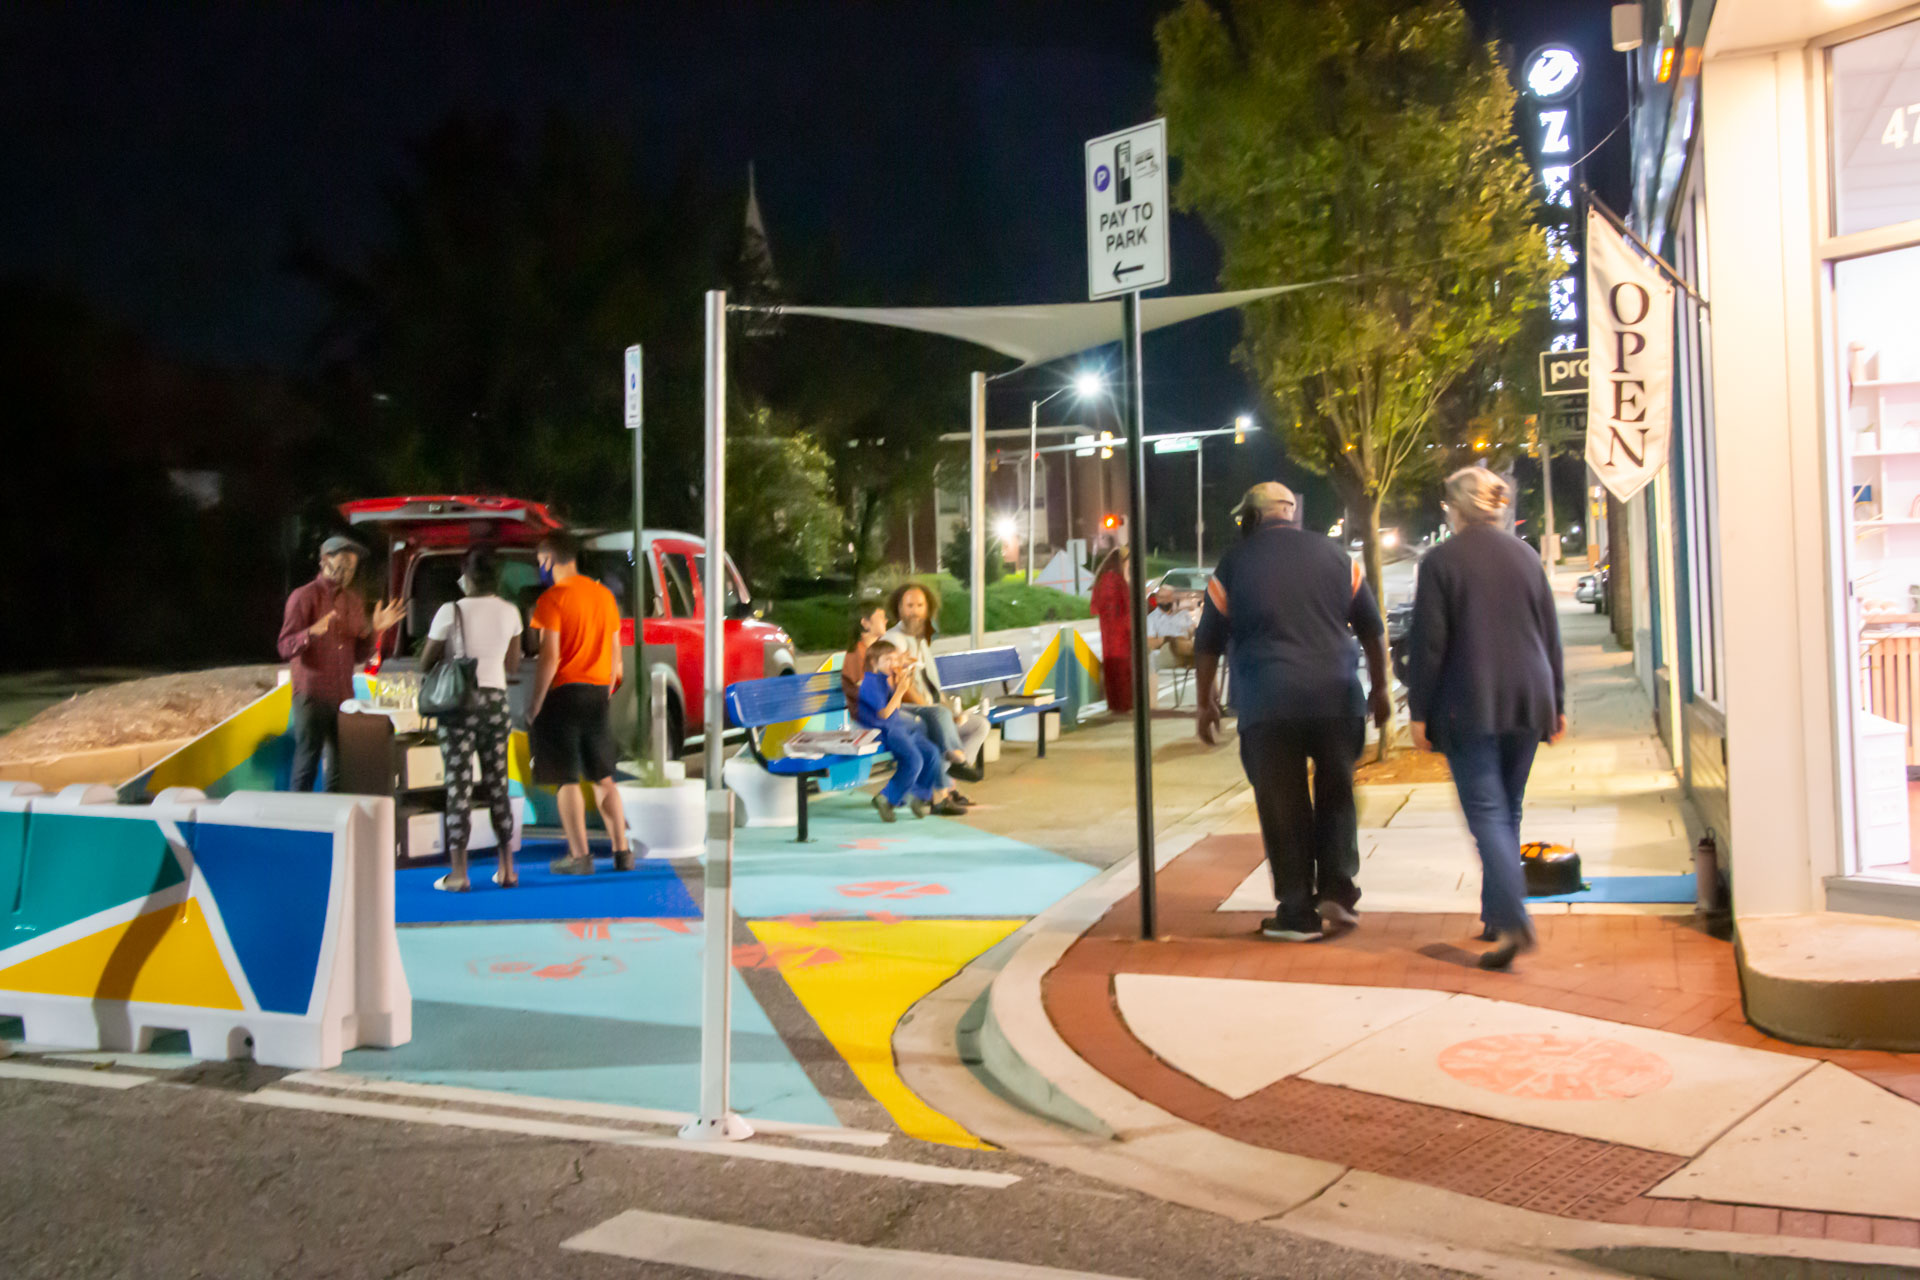 Design for Distancing Curbside Commons First Fridays merchant community event